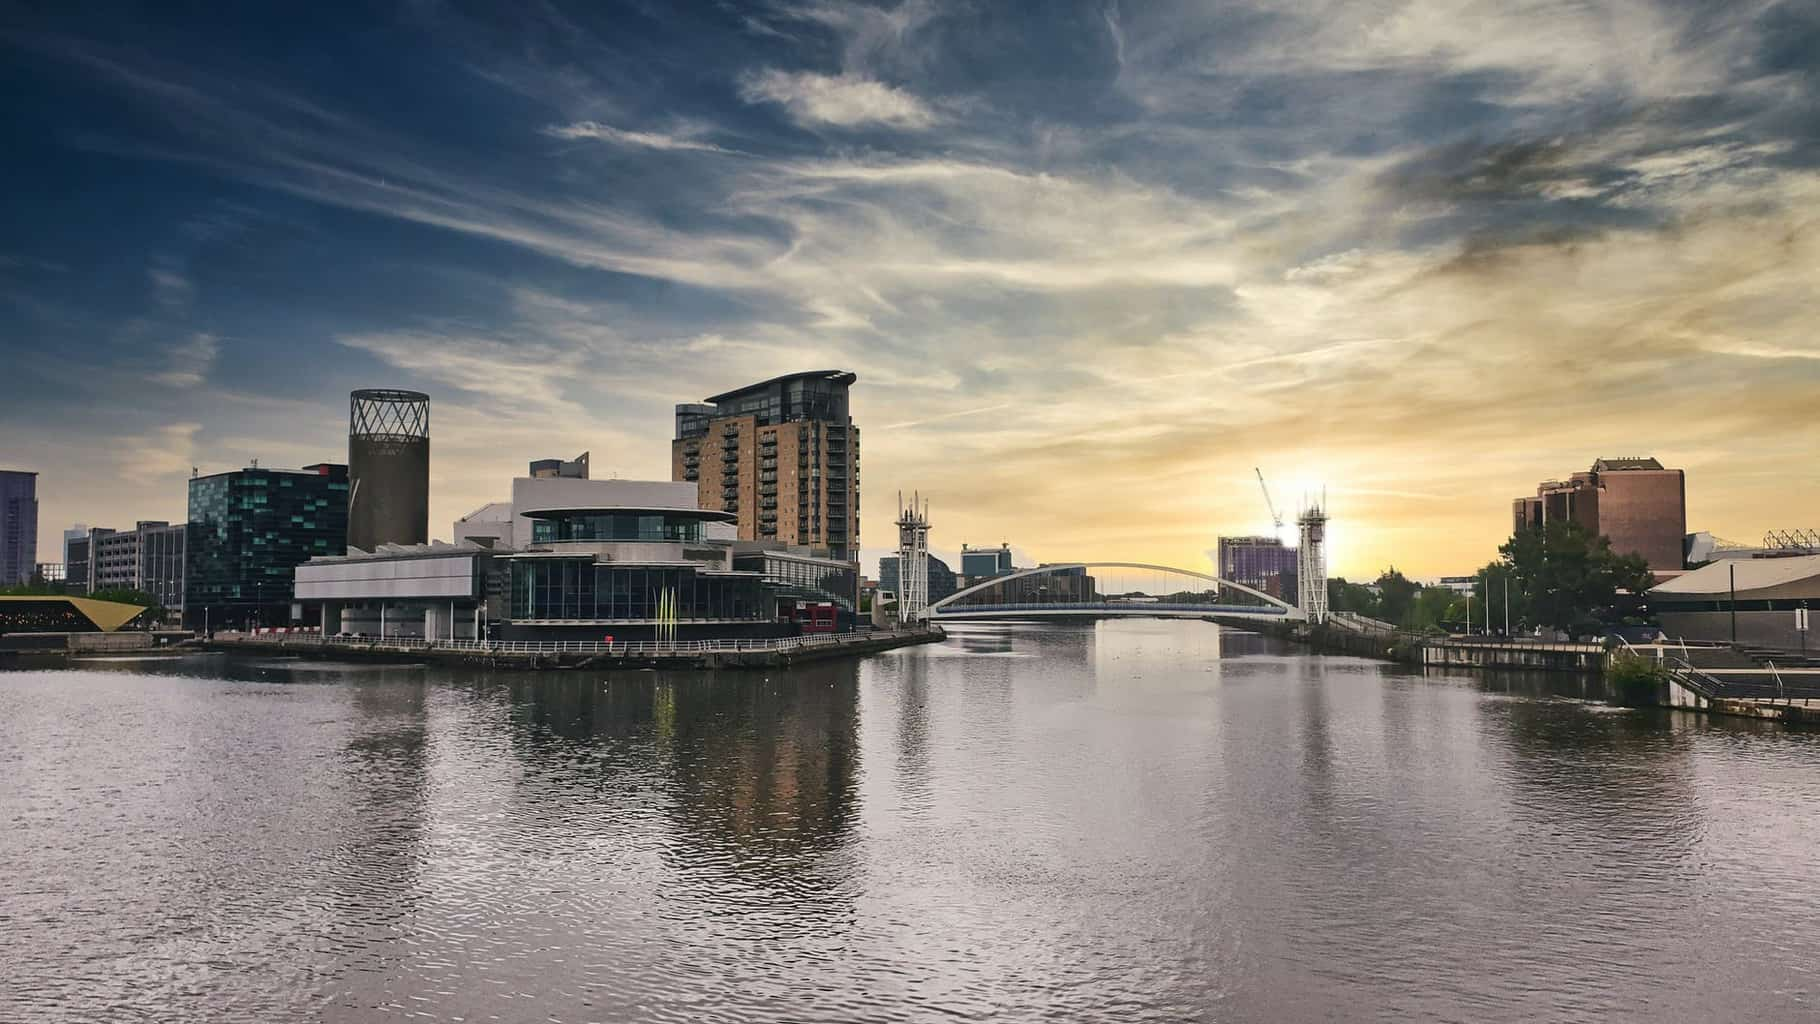 Make Manchester part of your UK staycation